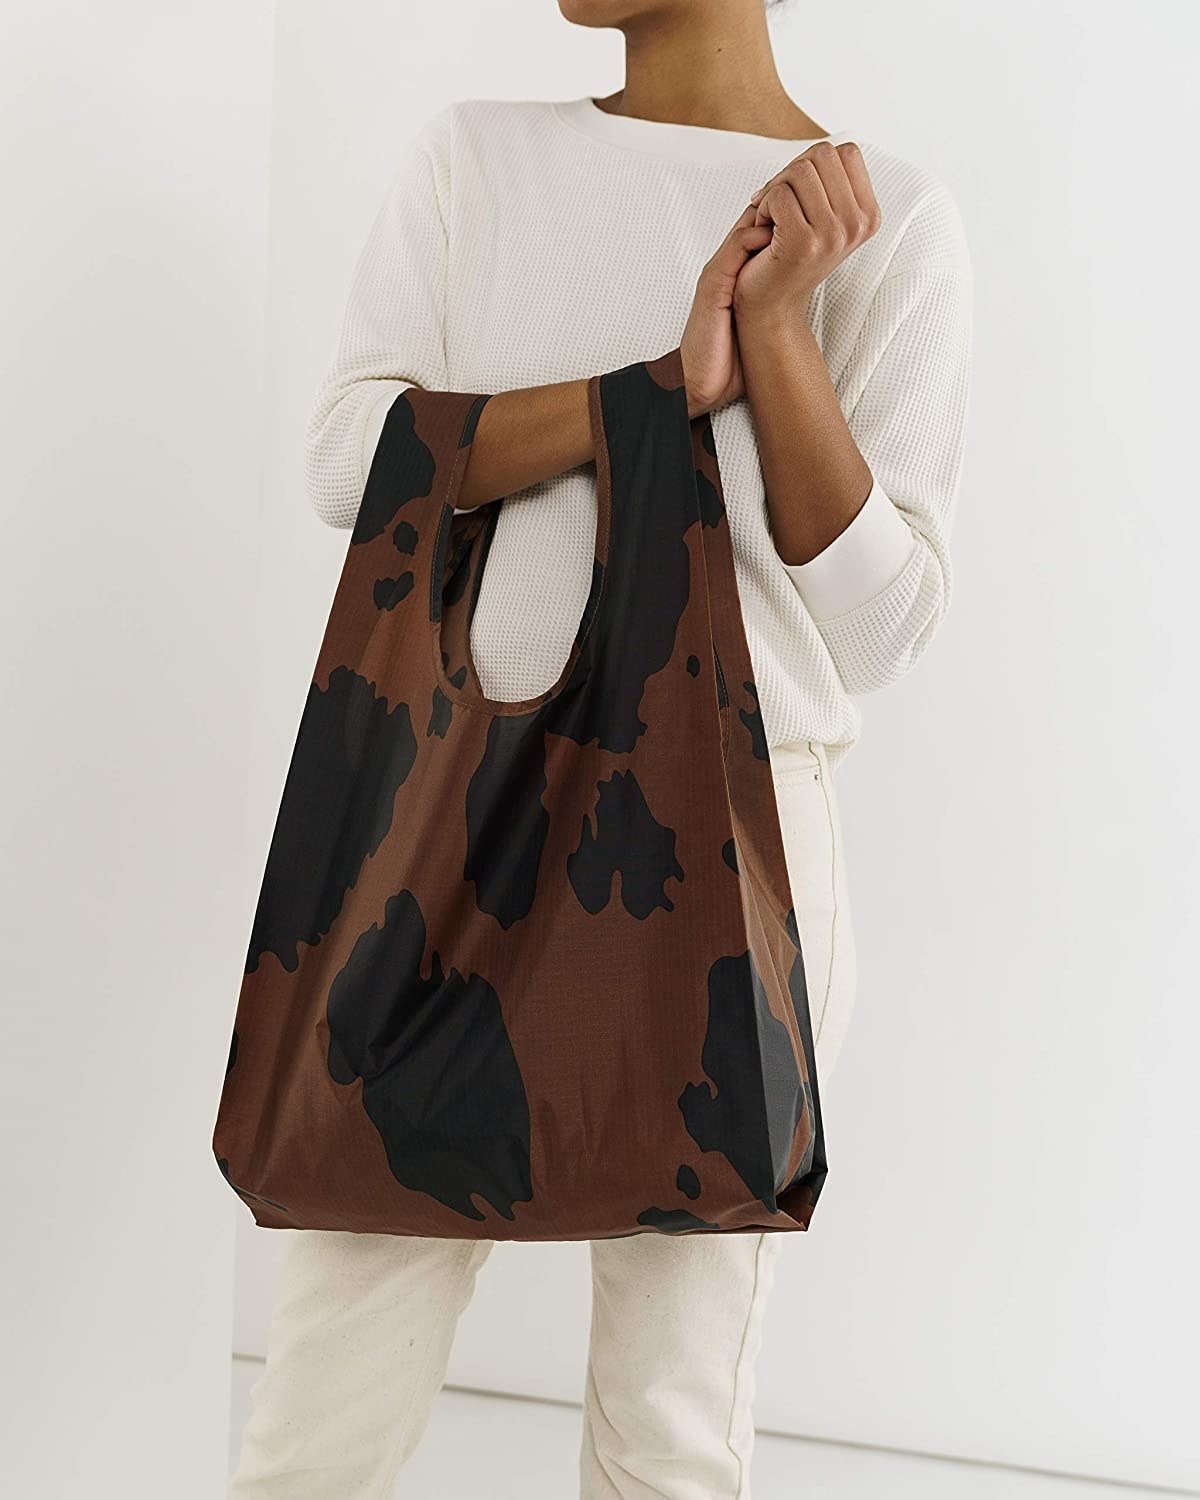 Brown and black spotted reusable bag